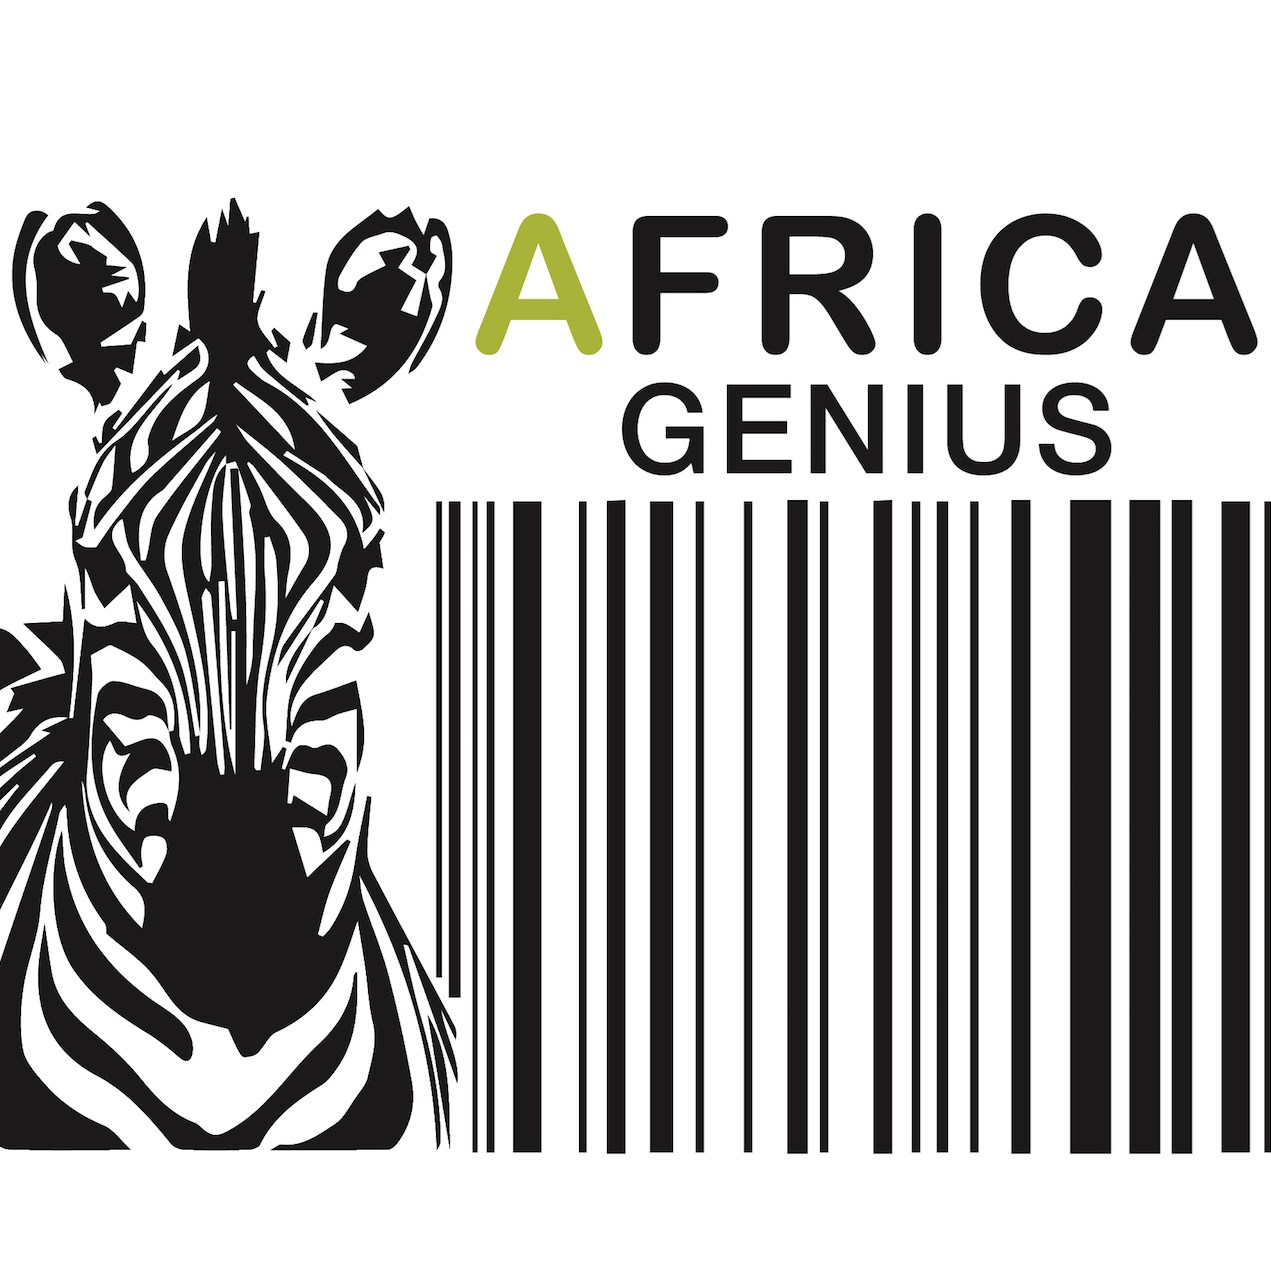 Africa Genius Travel Worldwide